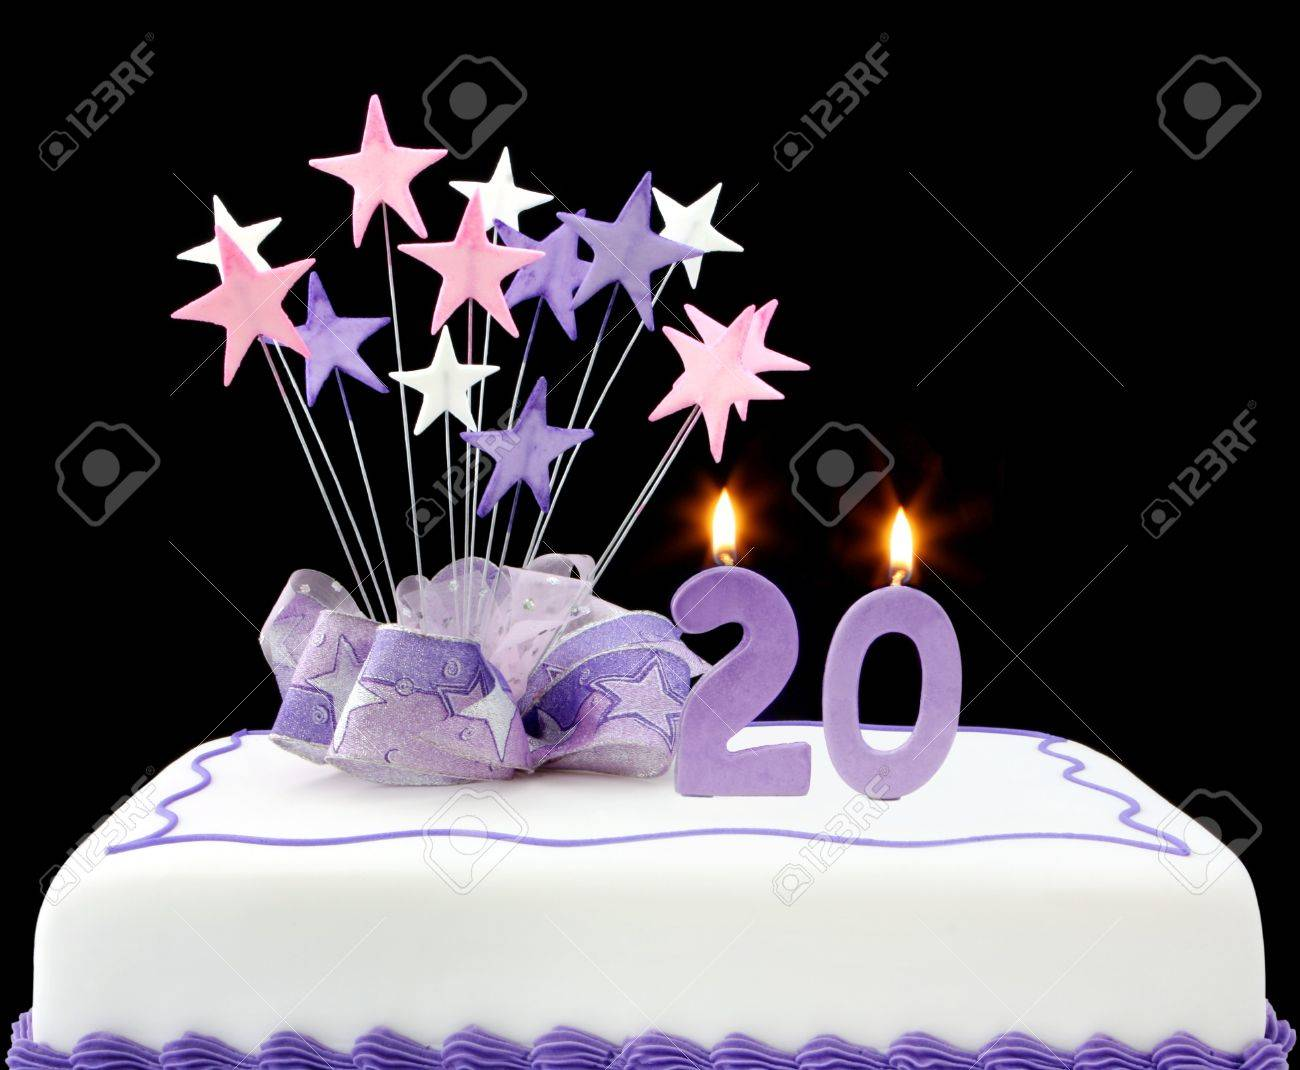 Fancy Cake With Number 20 Candles Decorated With Ribbons And